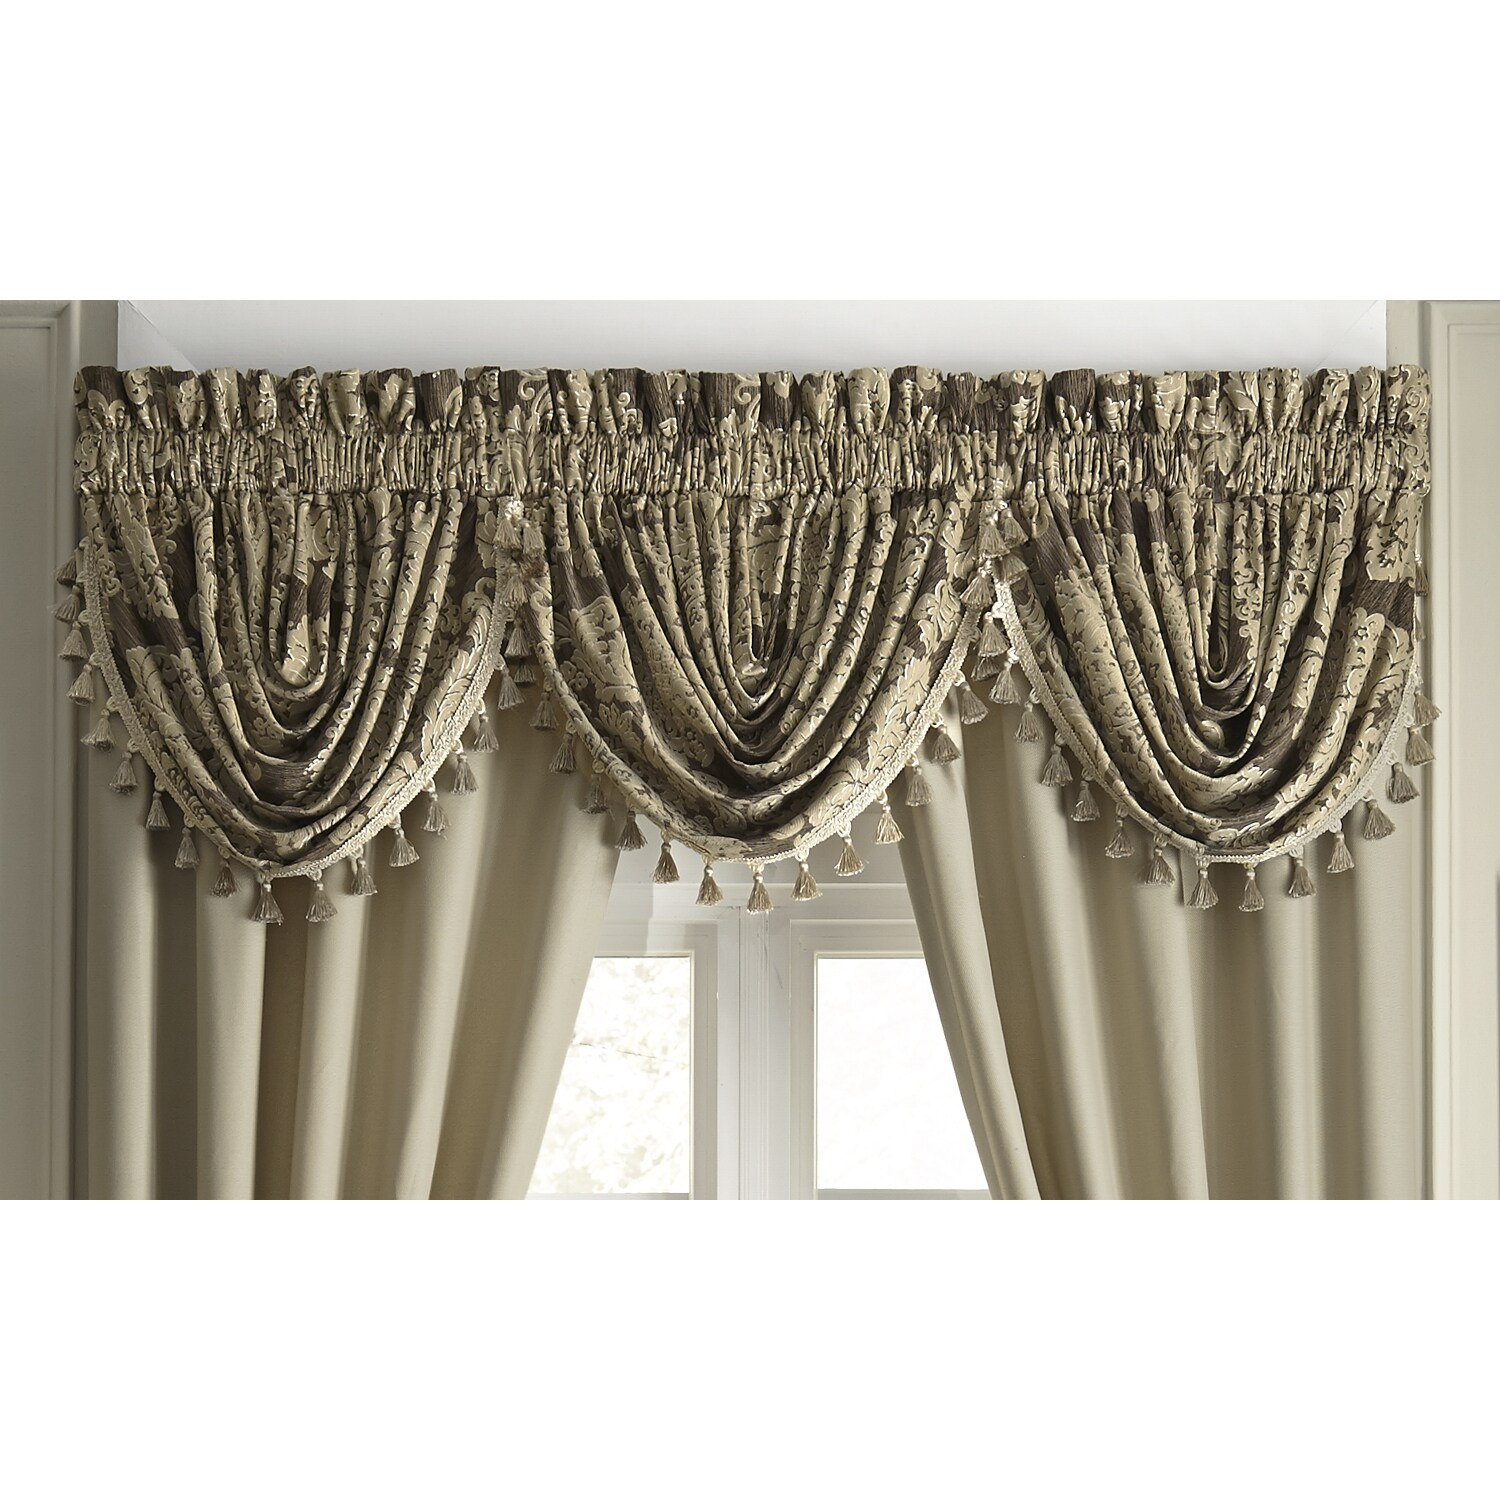 how board step valance hang to waterfall scalloped mount watch youtube your